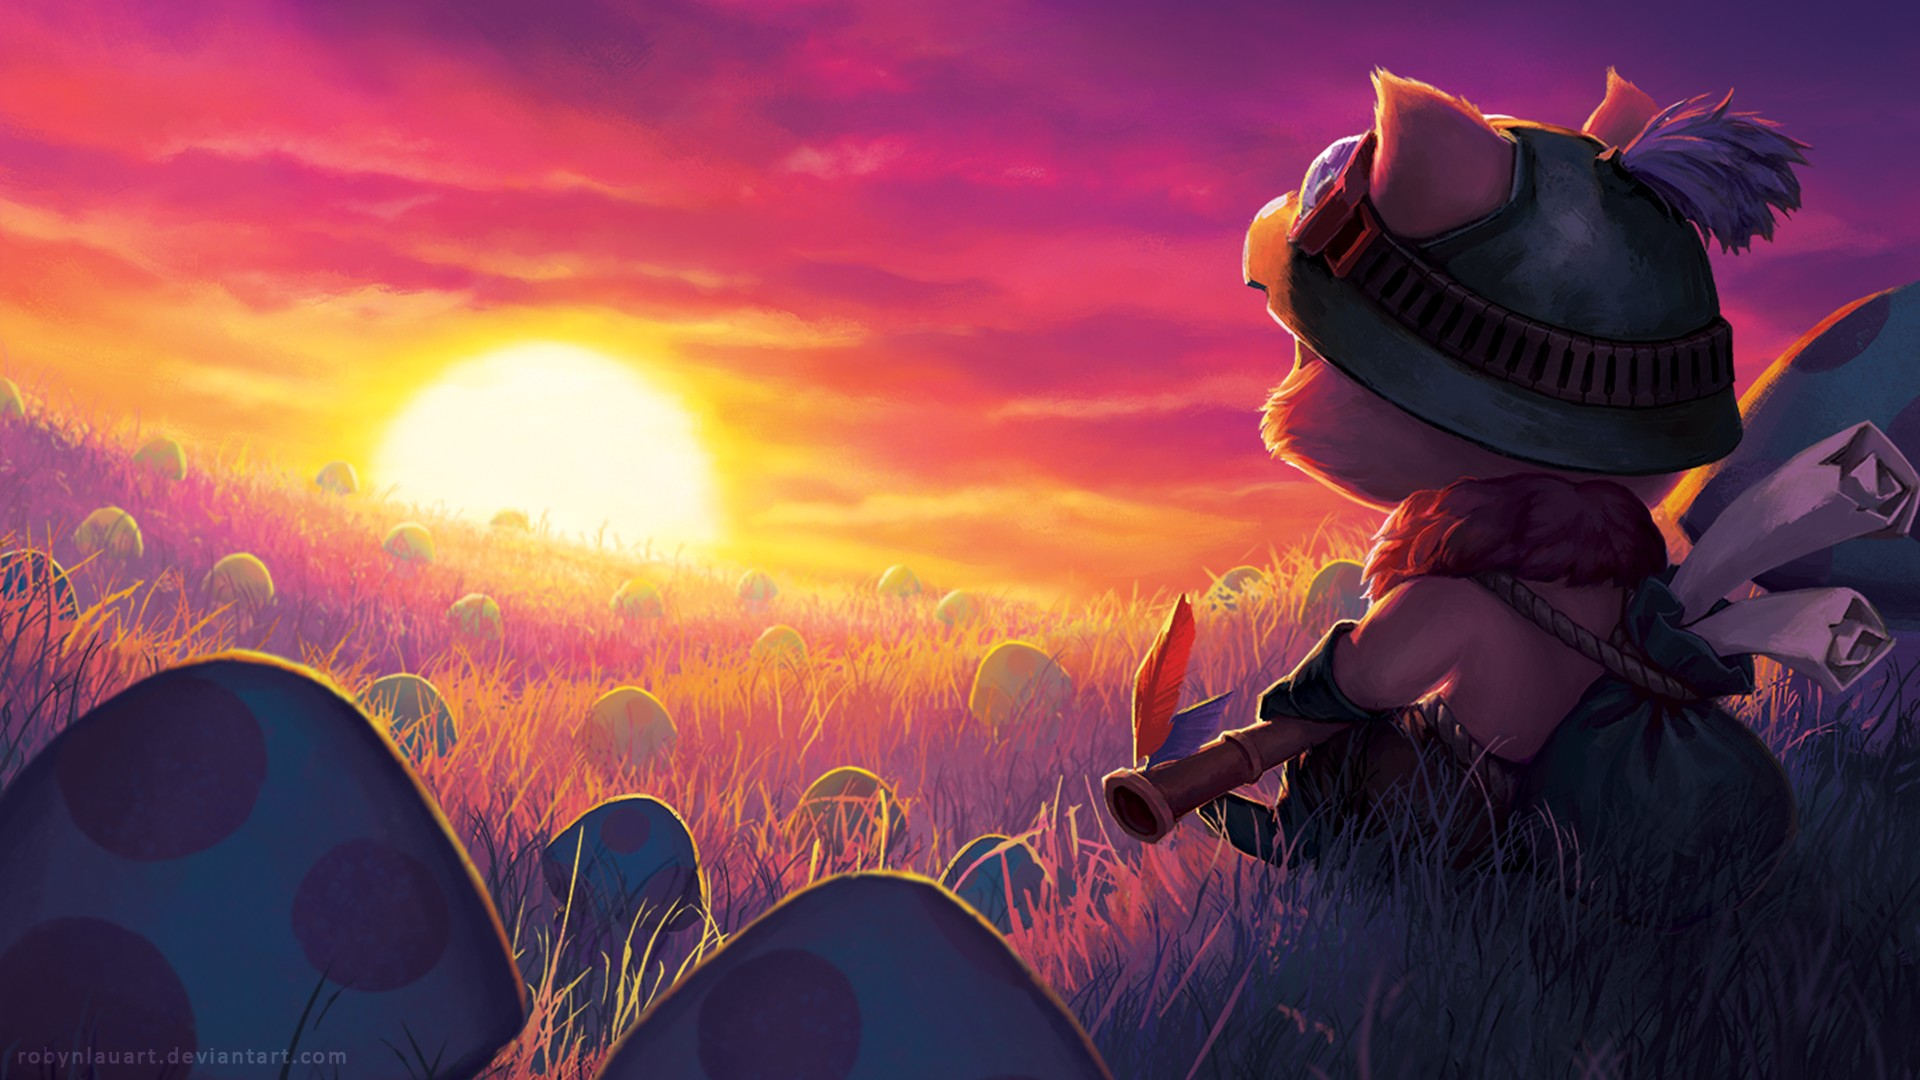 League of Legends wallpaper HD ·① Download free awesome ...